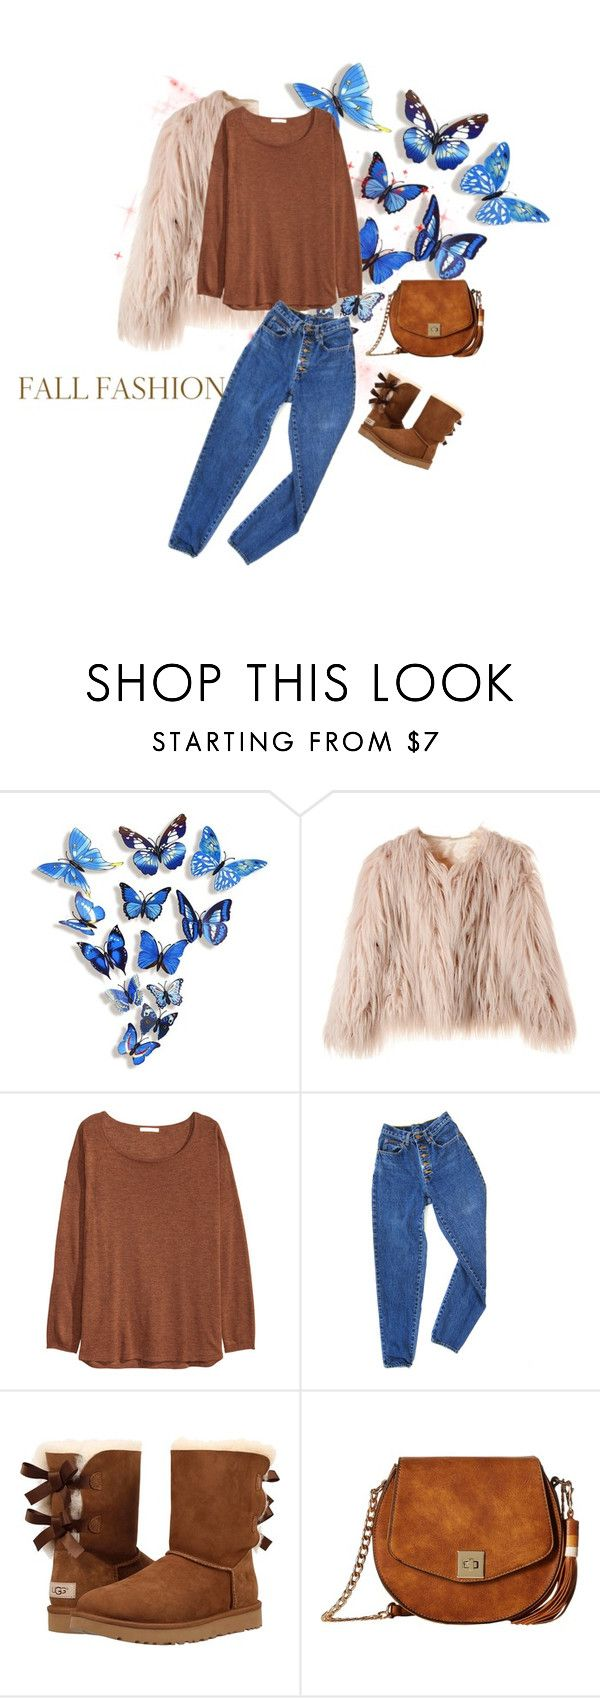 """""""FALL IS HERE !!!"""" by gigi-sessions ❤ liked on Polyvore featuring WALL, H&M, PèPè, UGG Australia and Gabriella Rocha"""